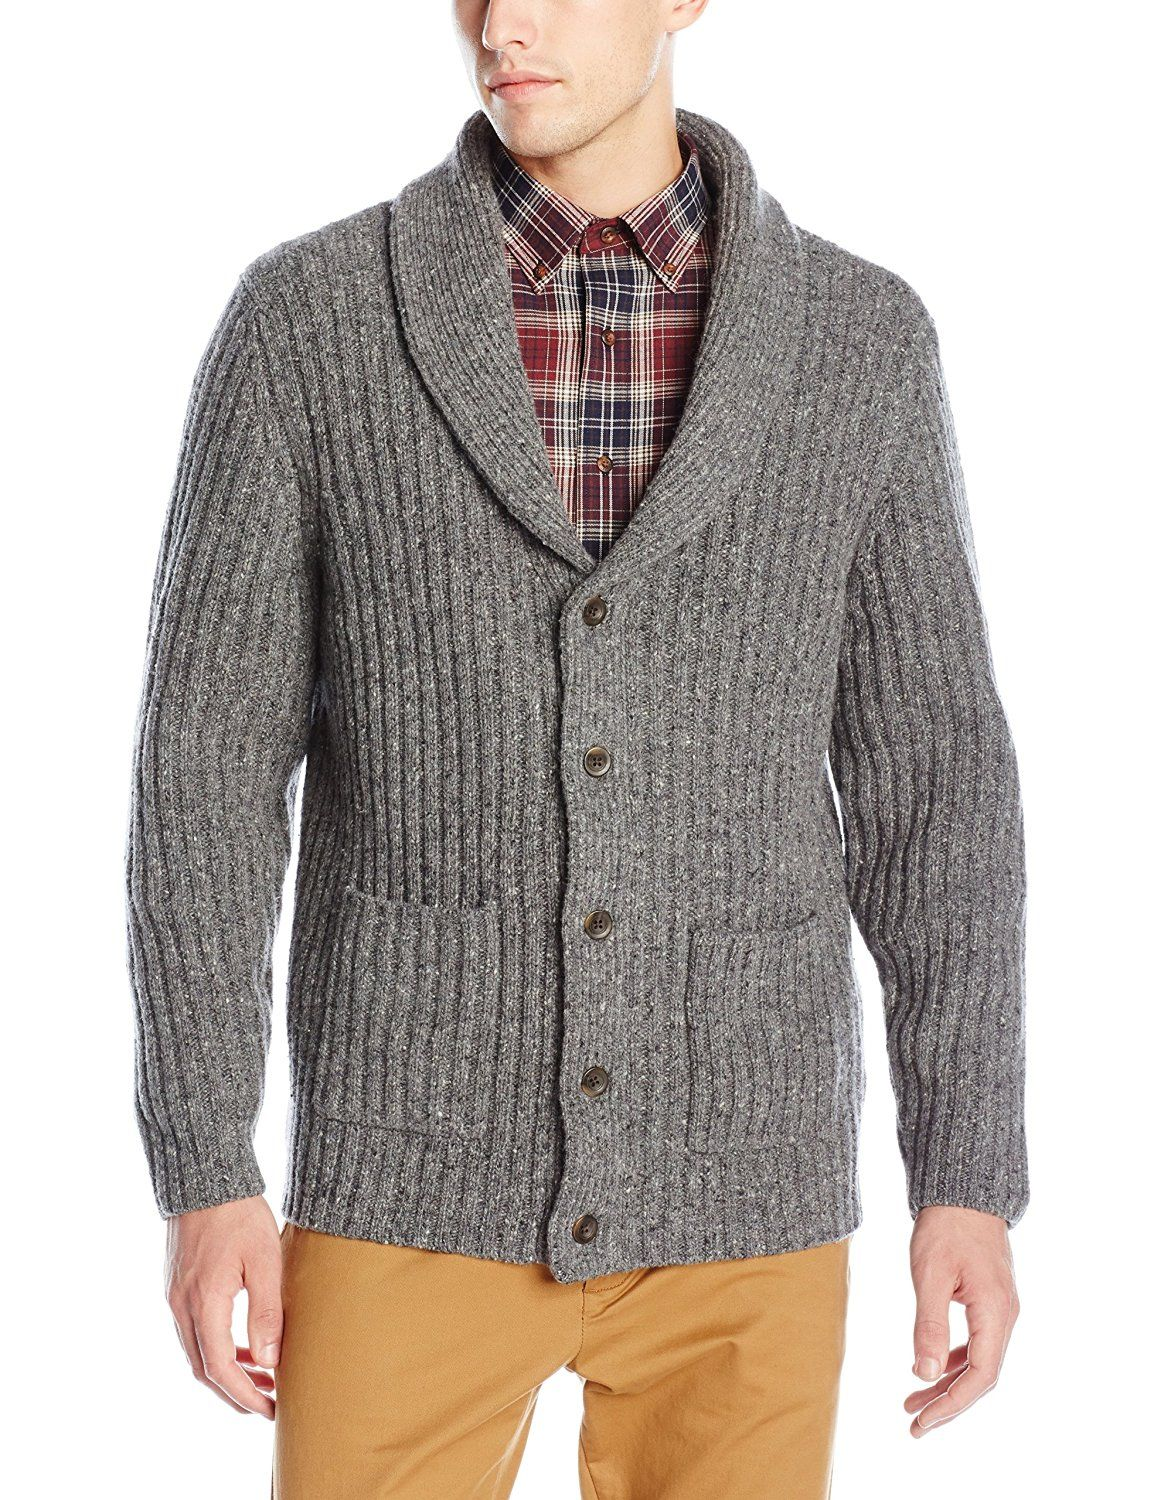 Men's Vintage Style Sweaters - 1920s to 1960s | 1920s, Men's ...